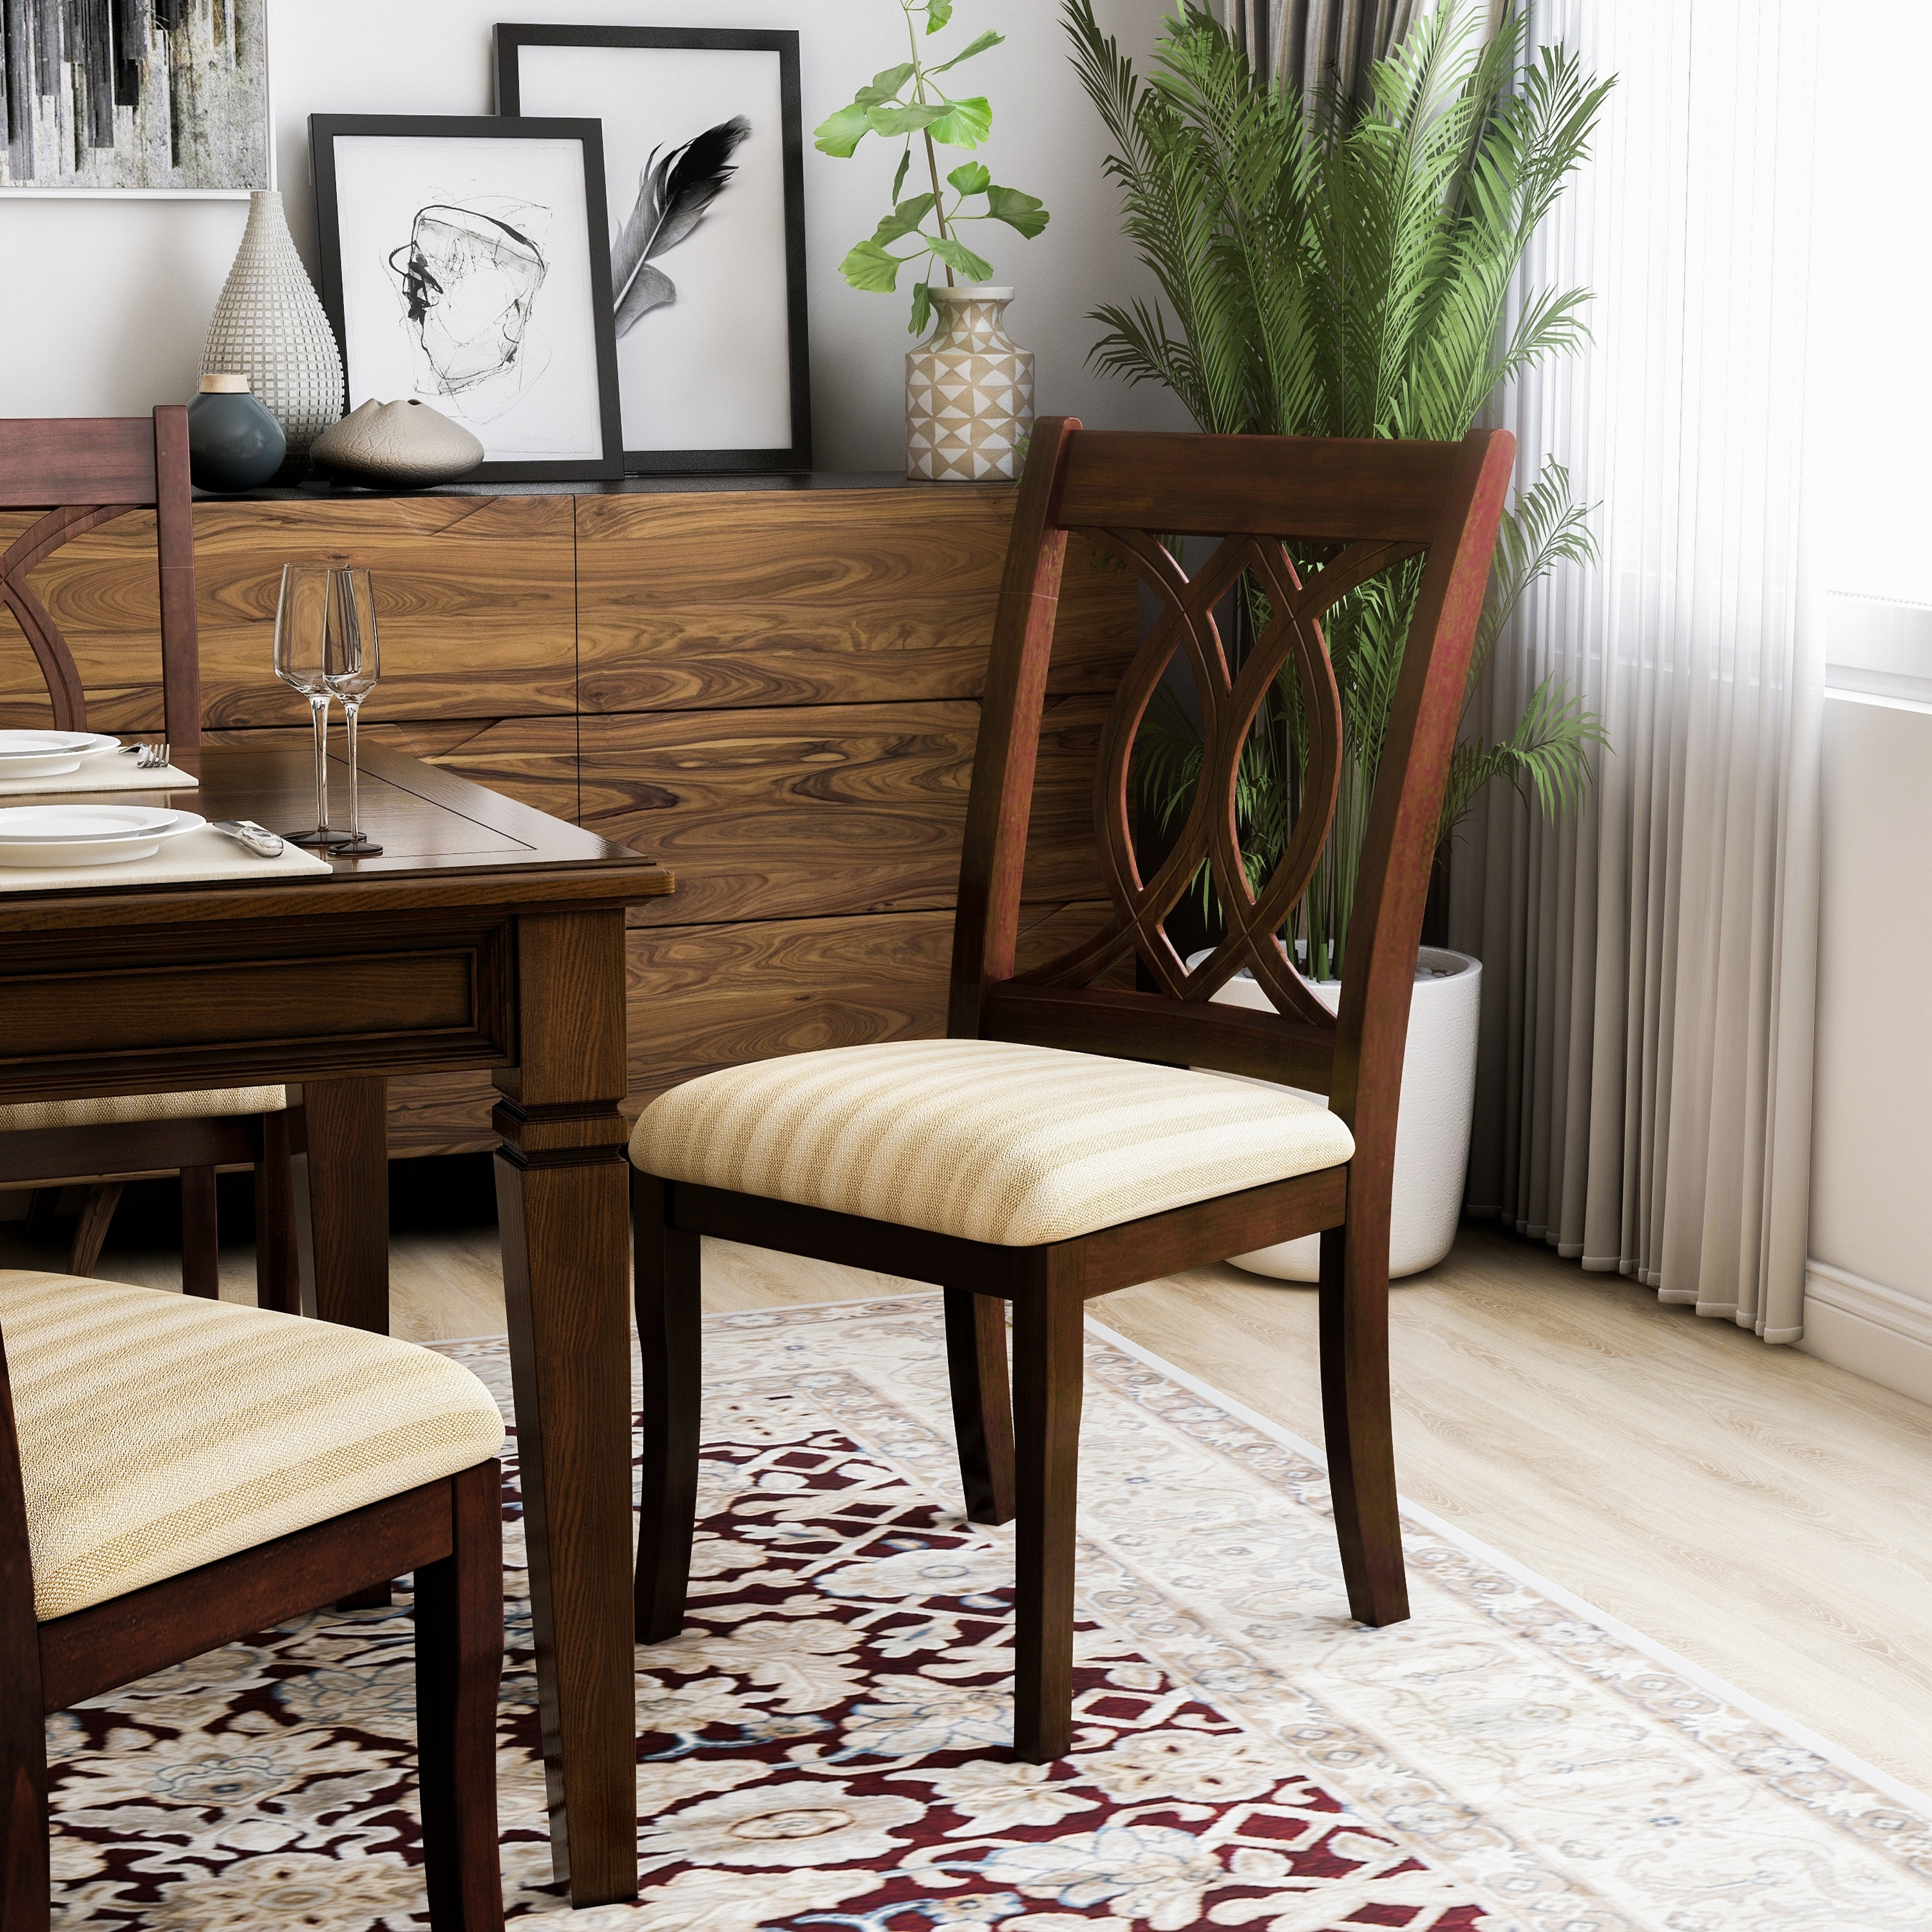 Picture of: Furniture Of America Rustic Cherry Padded Dining Chairs Set Of 2 On Sale Overstock 8904447